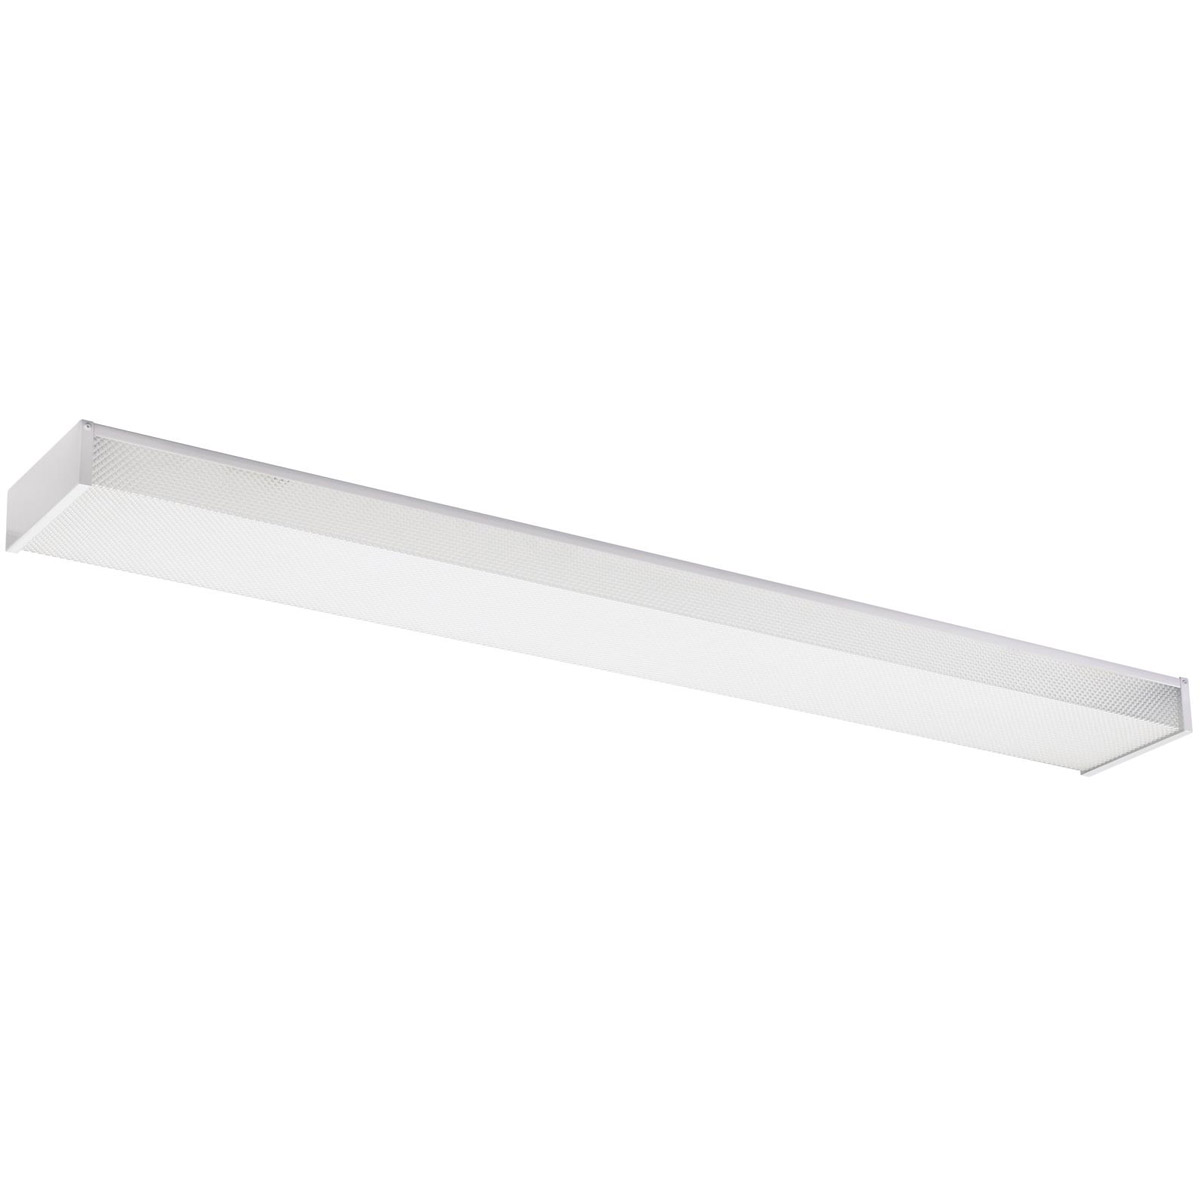 Sea Gull Lighting Signature 2 Light Fluorescent Flush Mount in White 59132LE-15 photo